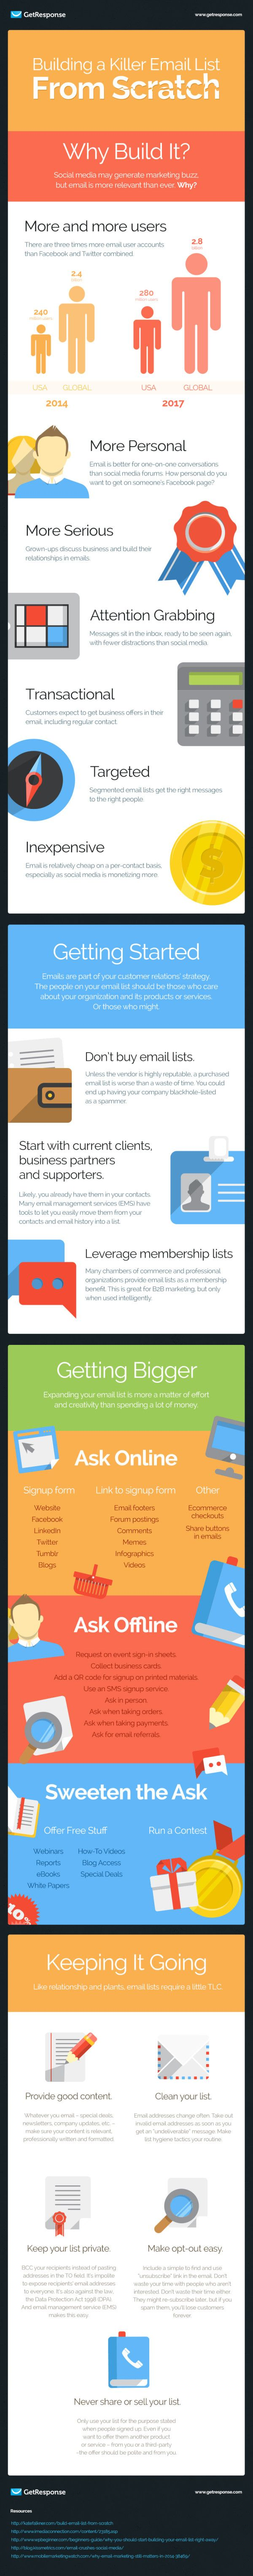 Building a Killer #Email List from Scratch